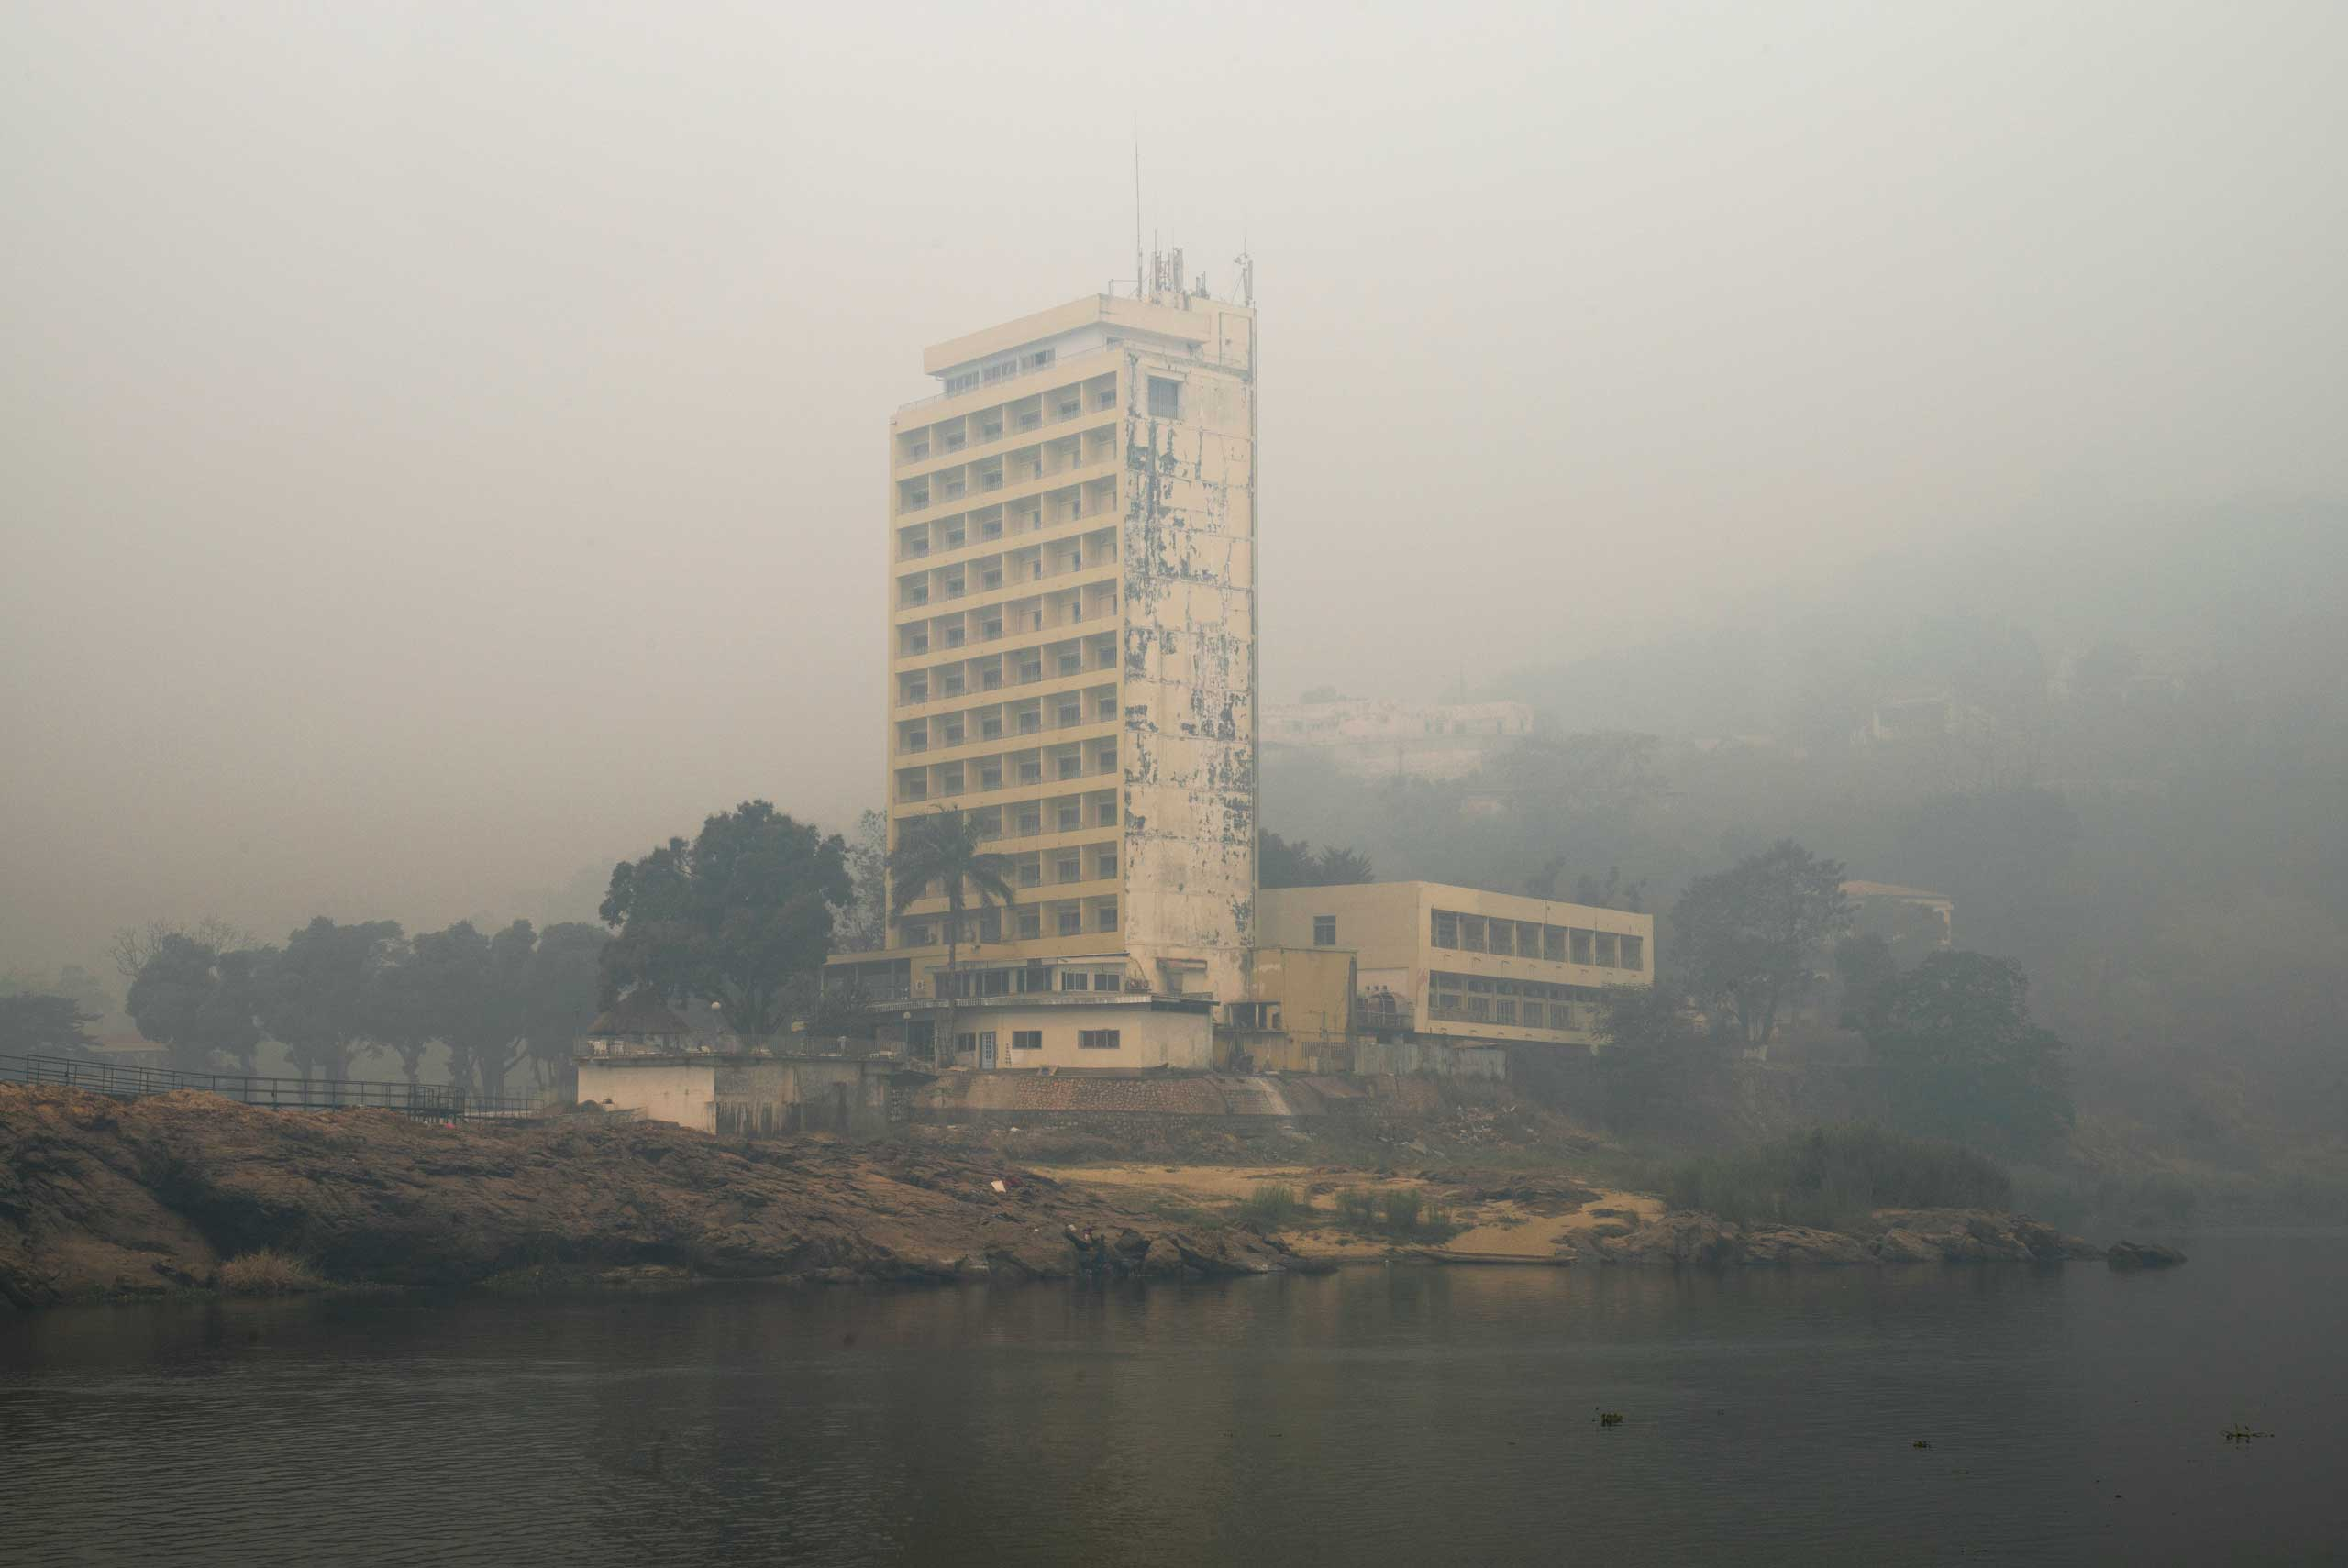 A building seen from the Oubangui river.